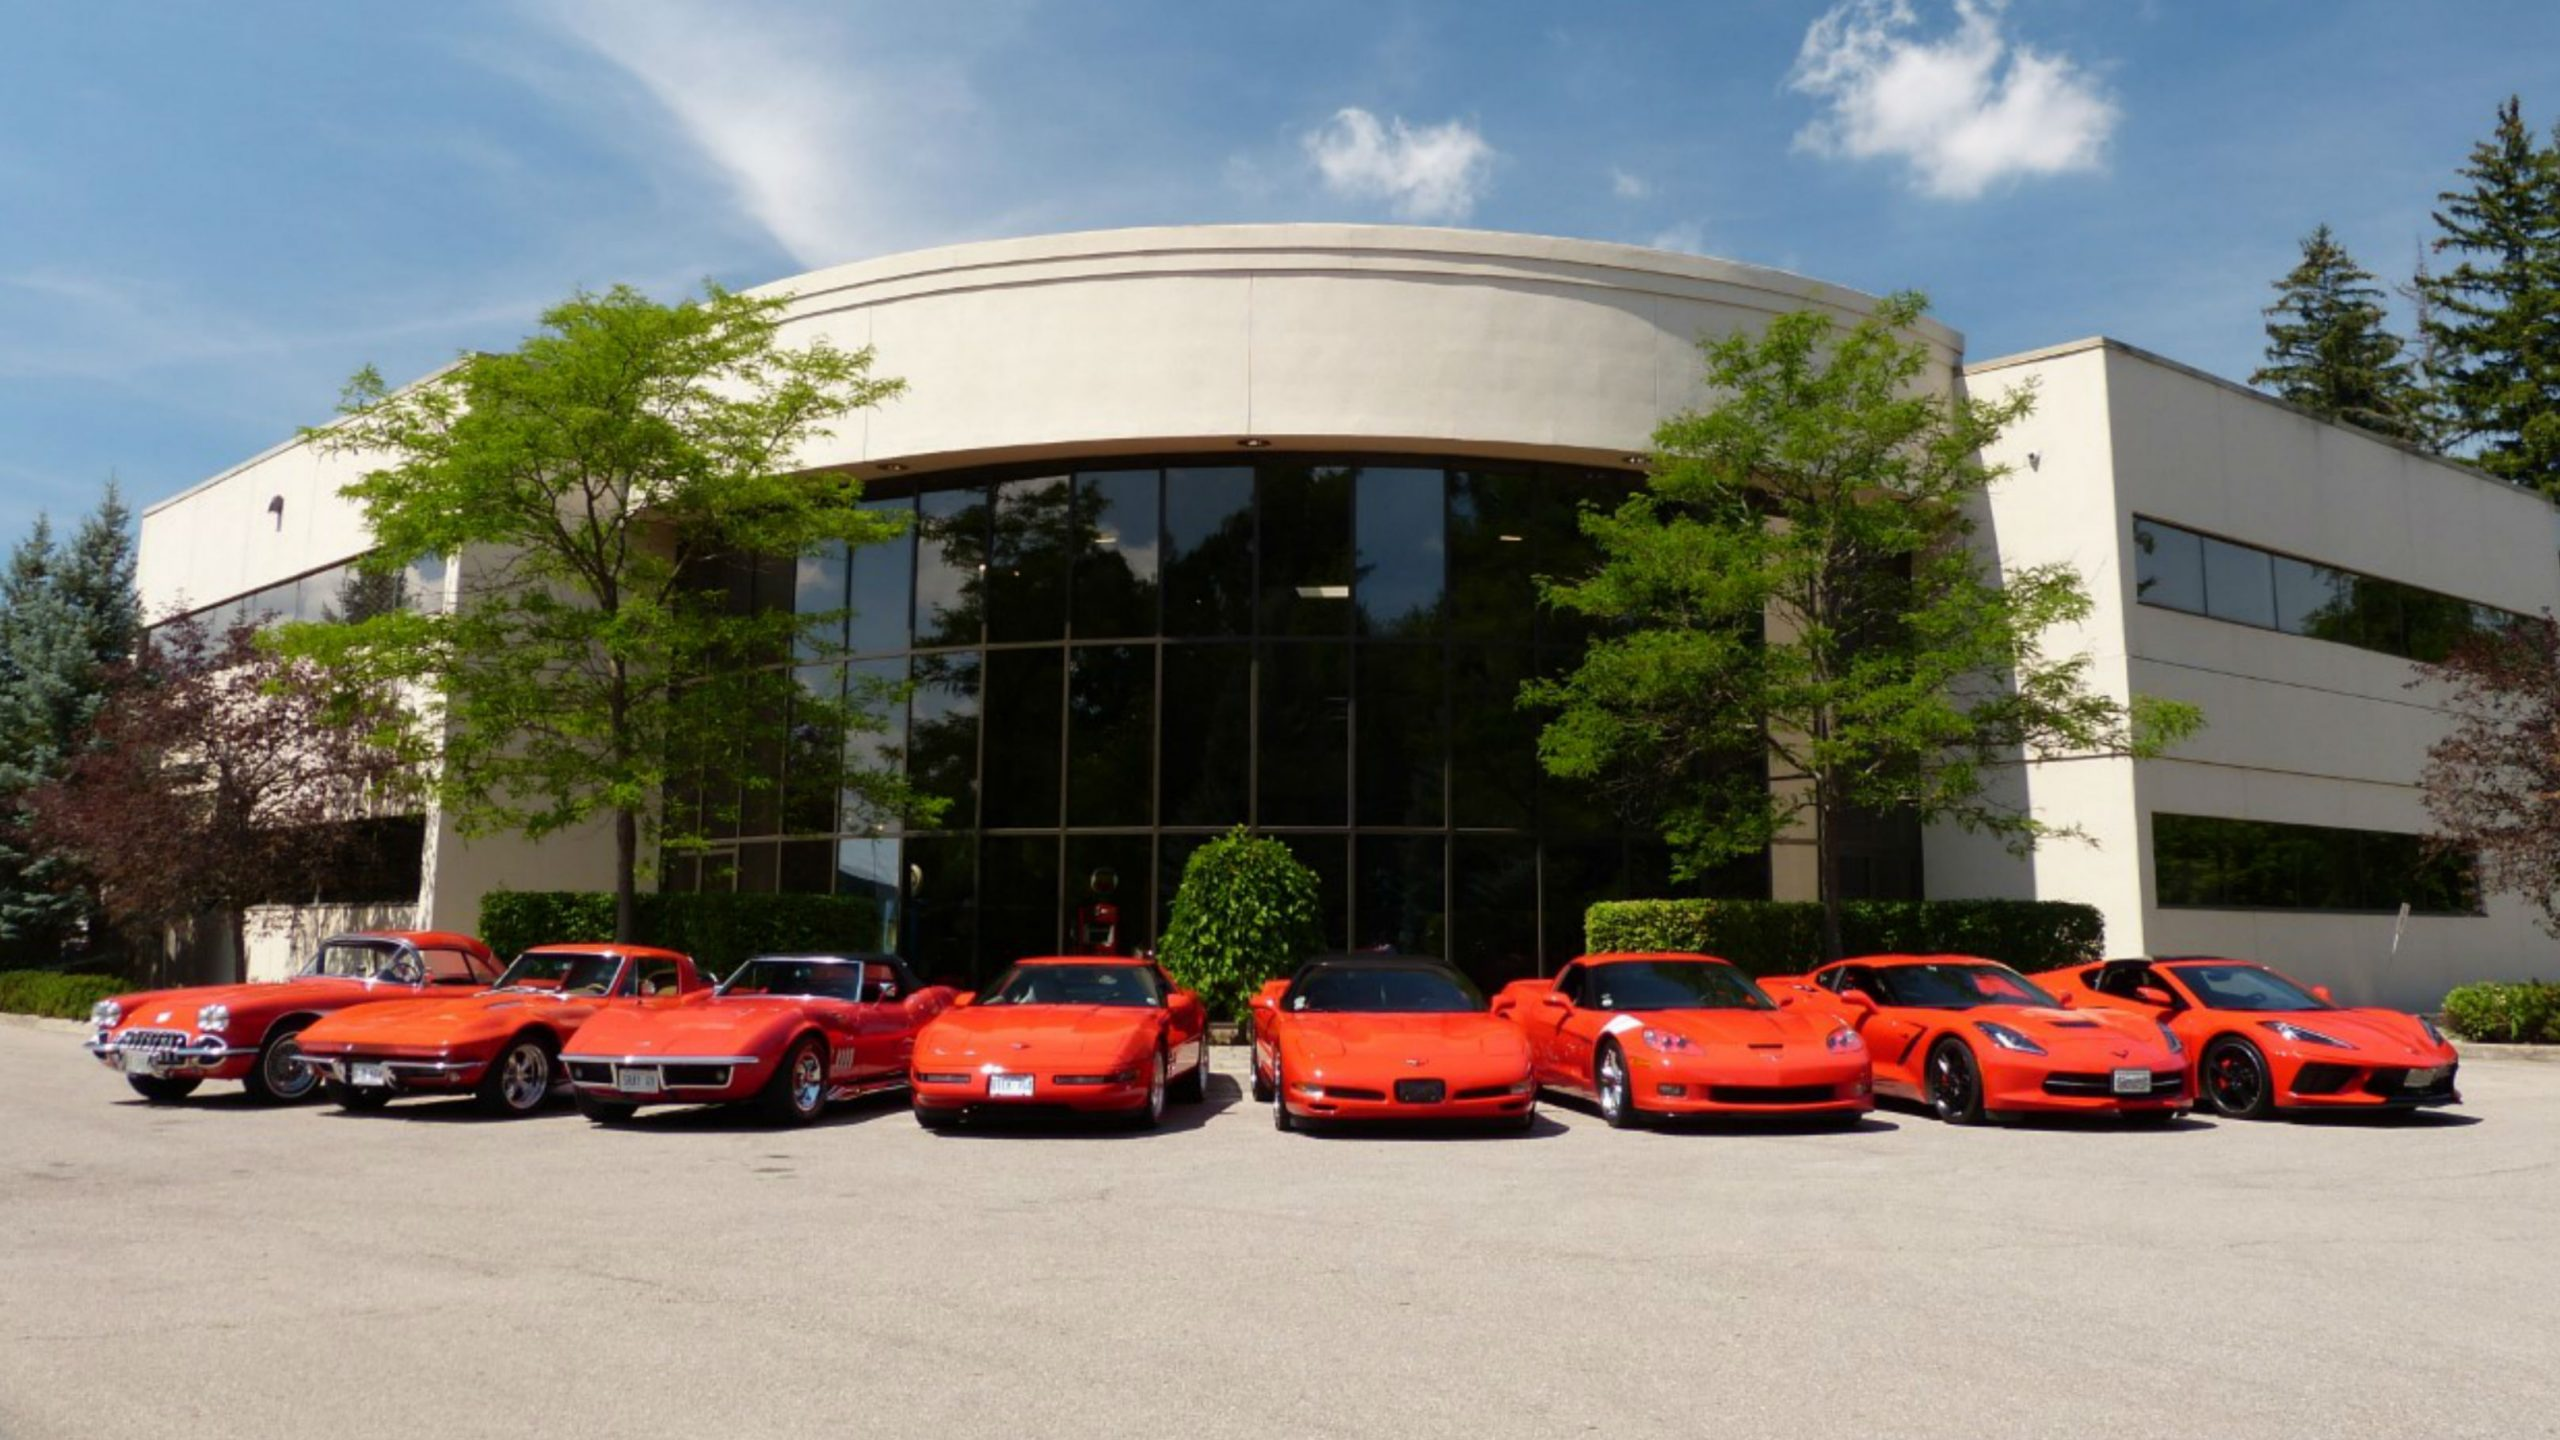 Corvette Club of Ontario